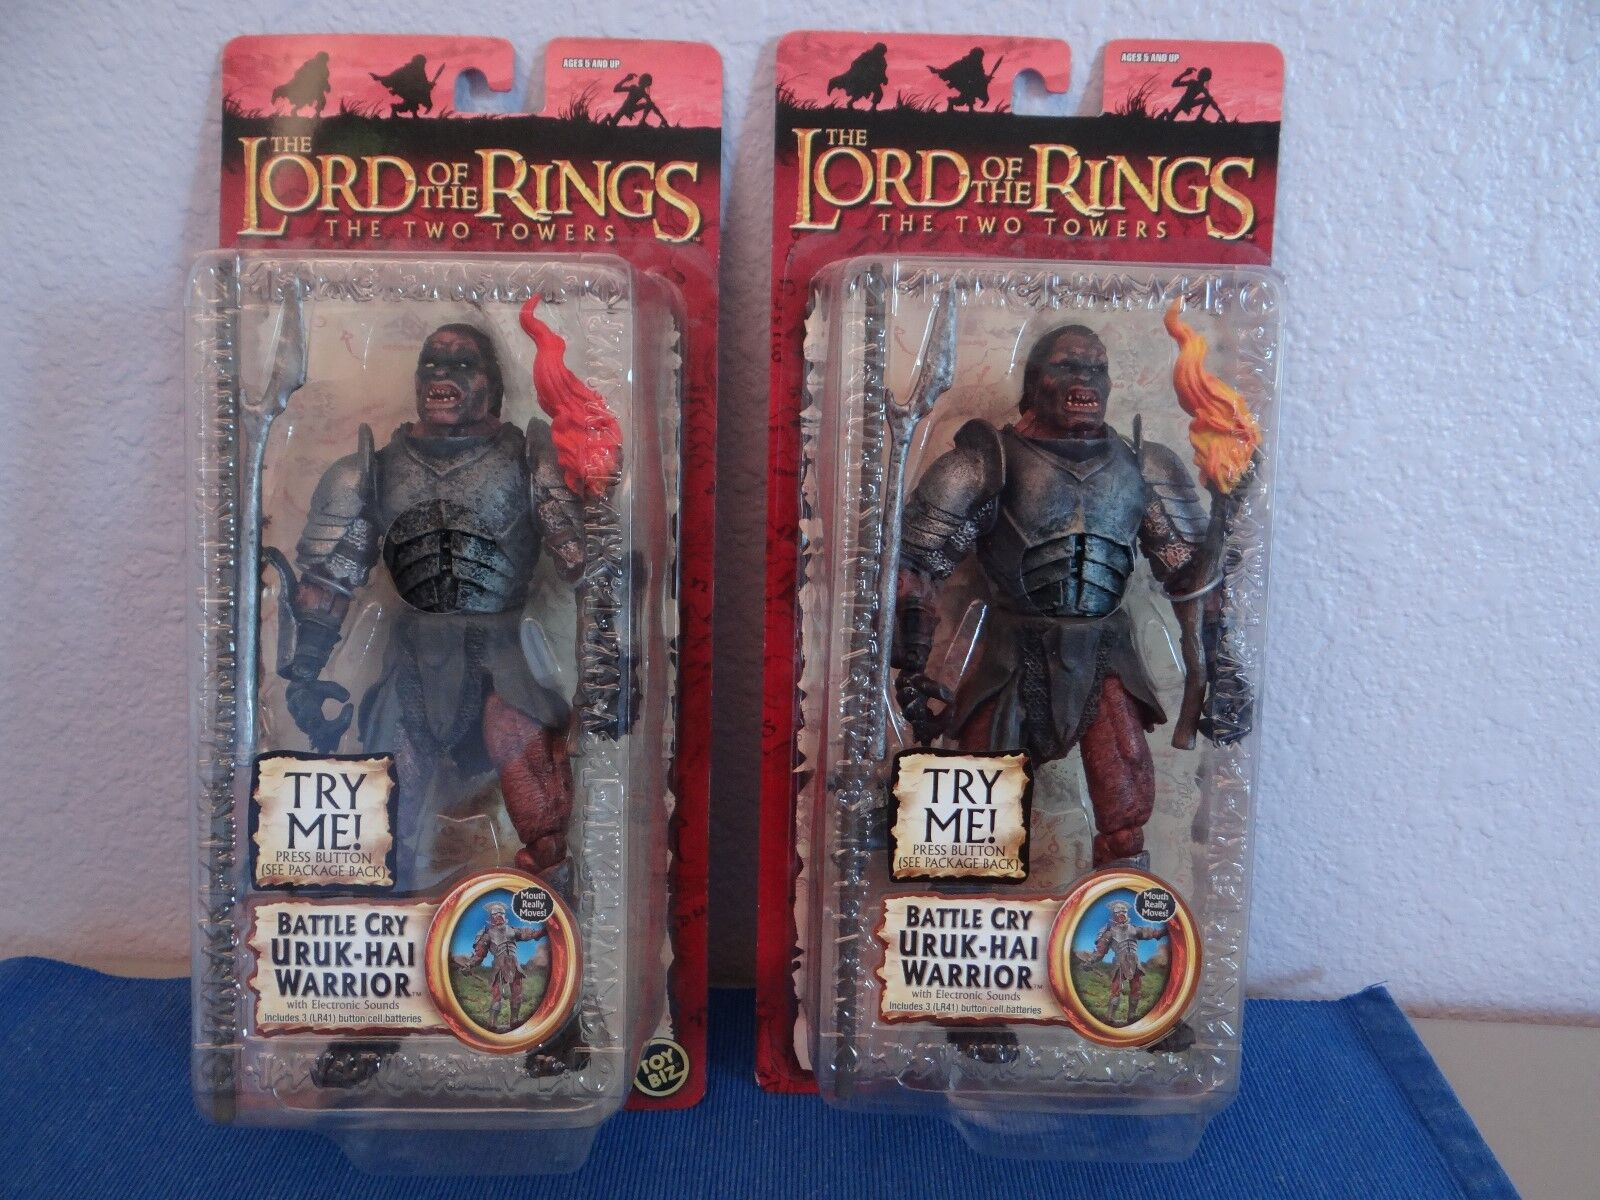 2  BATTLE CRY URUK HAI WARRIORS LOTR THE TWO TOWERS TOY BIZ (Both Flame Farbes)